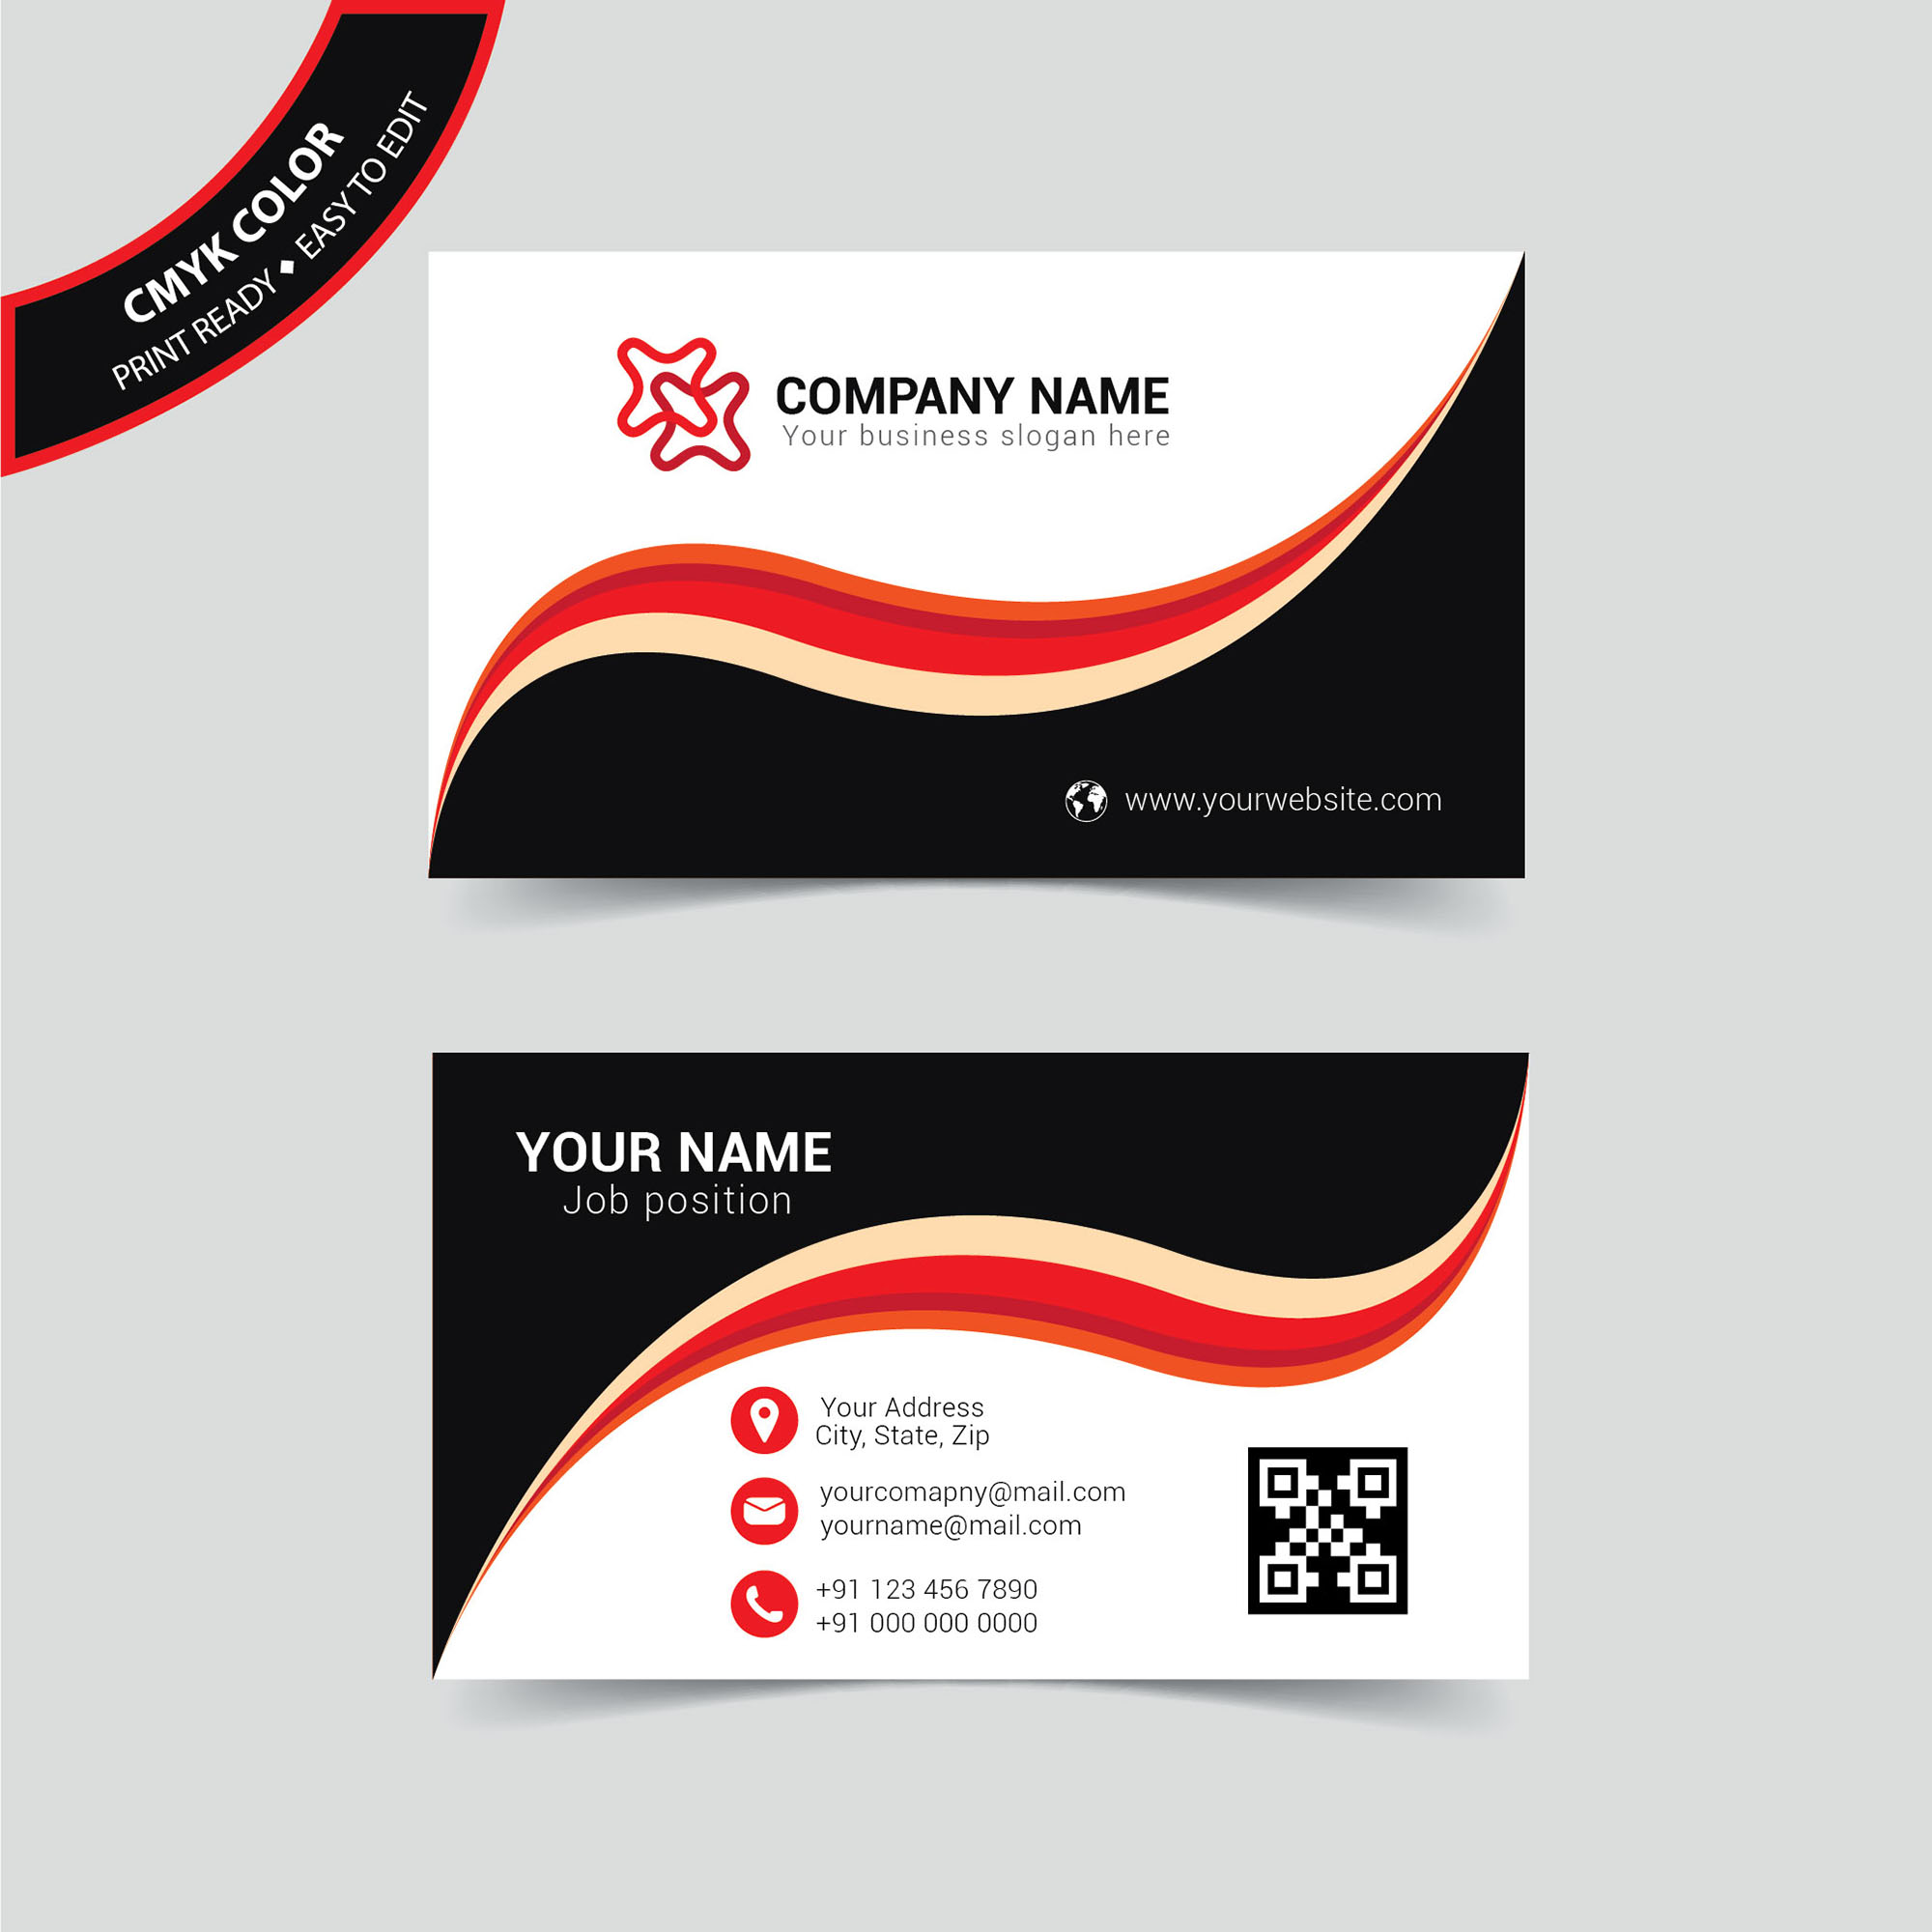 Corporate name card design free download wisxi business card business cards business card design business card template design templates flashek Image collections